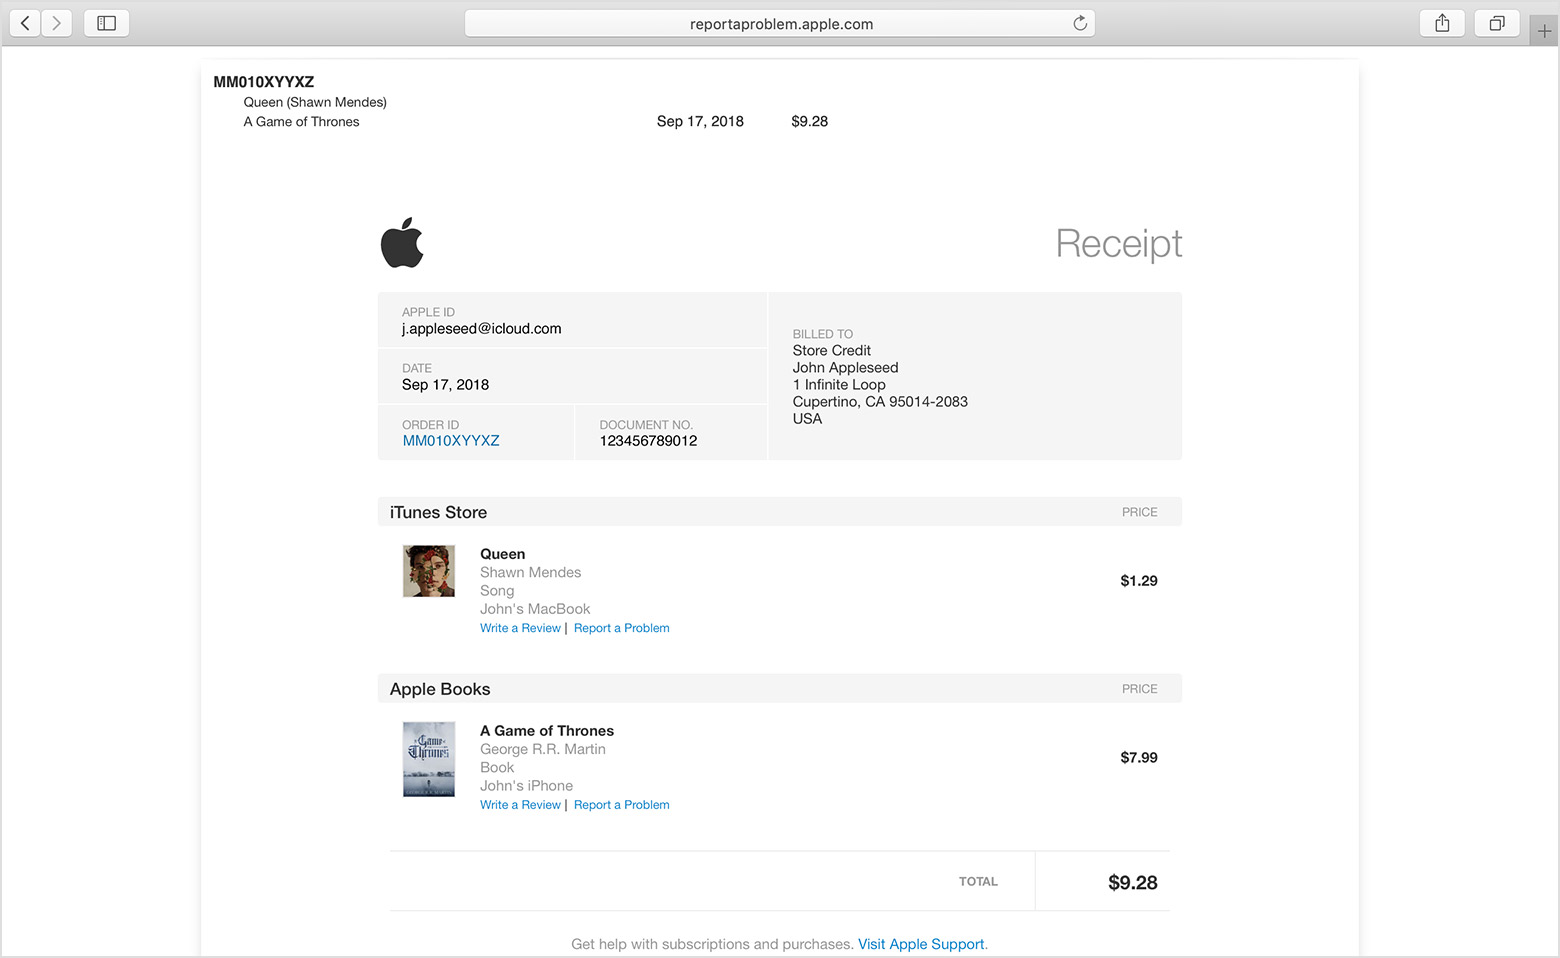 A Safari window open to reportaproblem.apple.com with a sample Receipt showing.